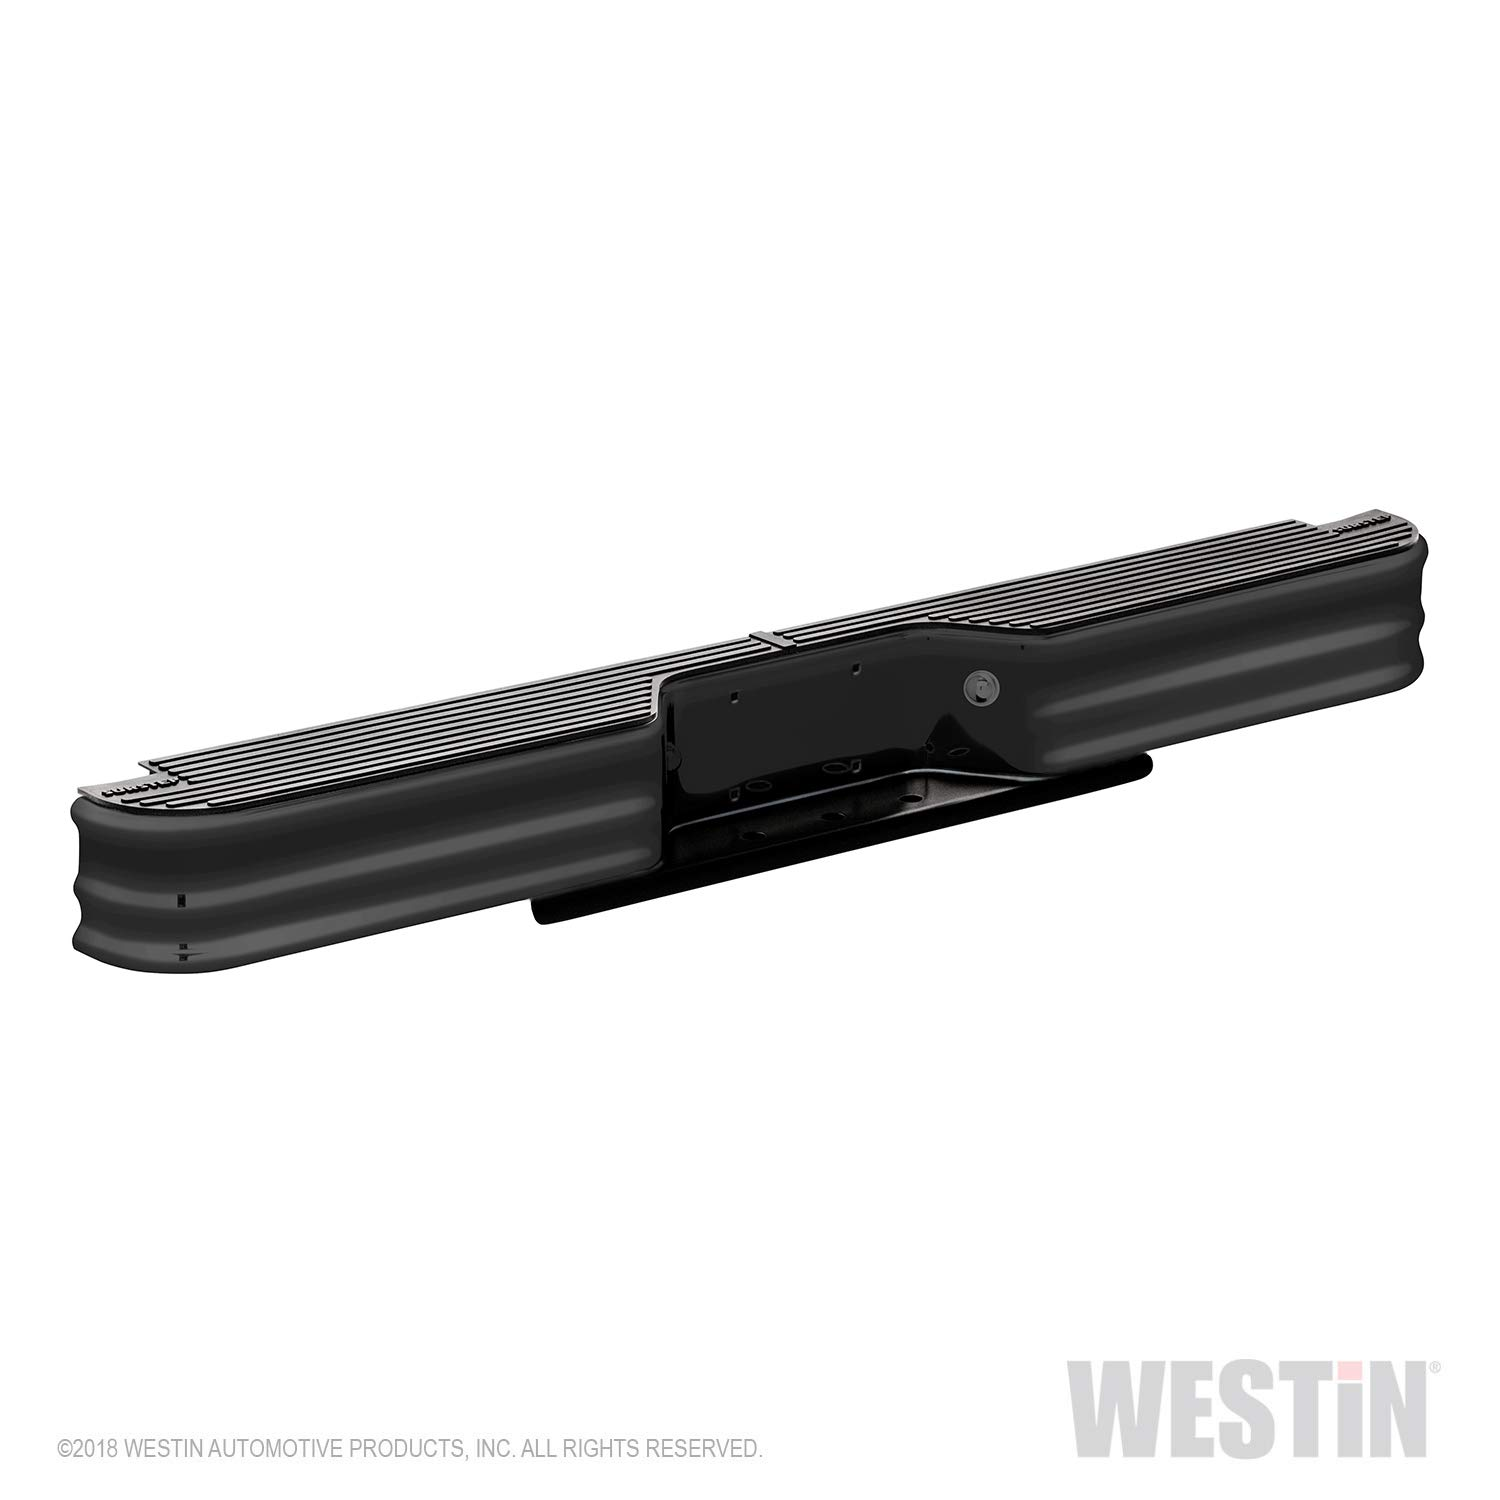 Fey 66001 SureStep Universal Black Replacement Rear Bumper (Requires Fey vehicle specific mounting kit sold separately) Westin